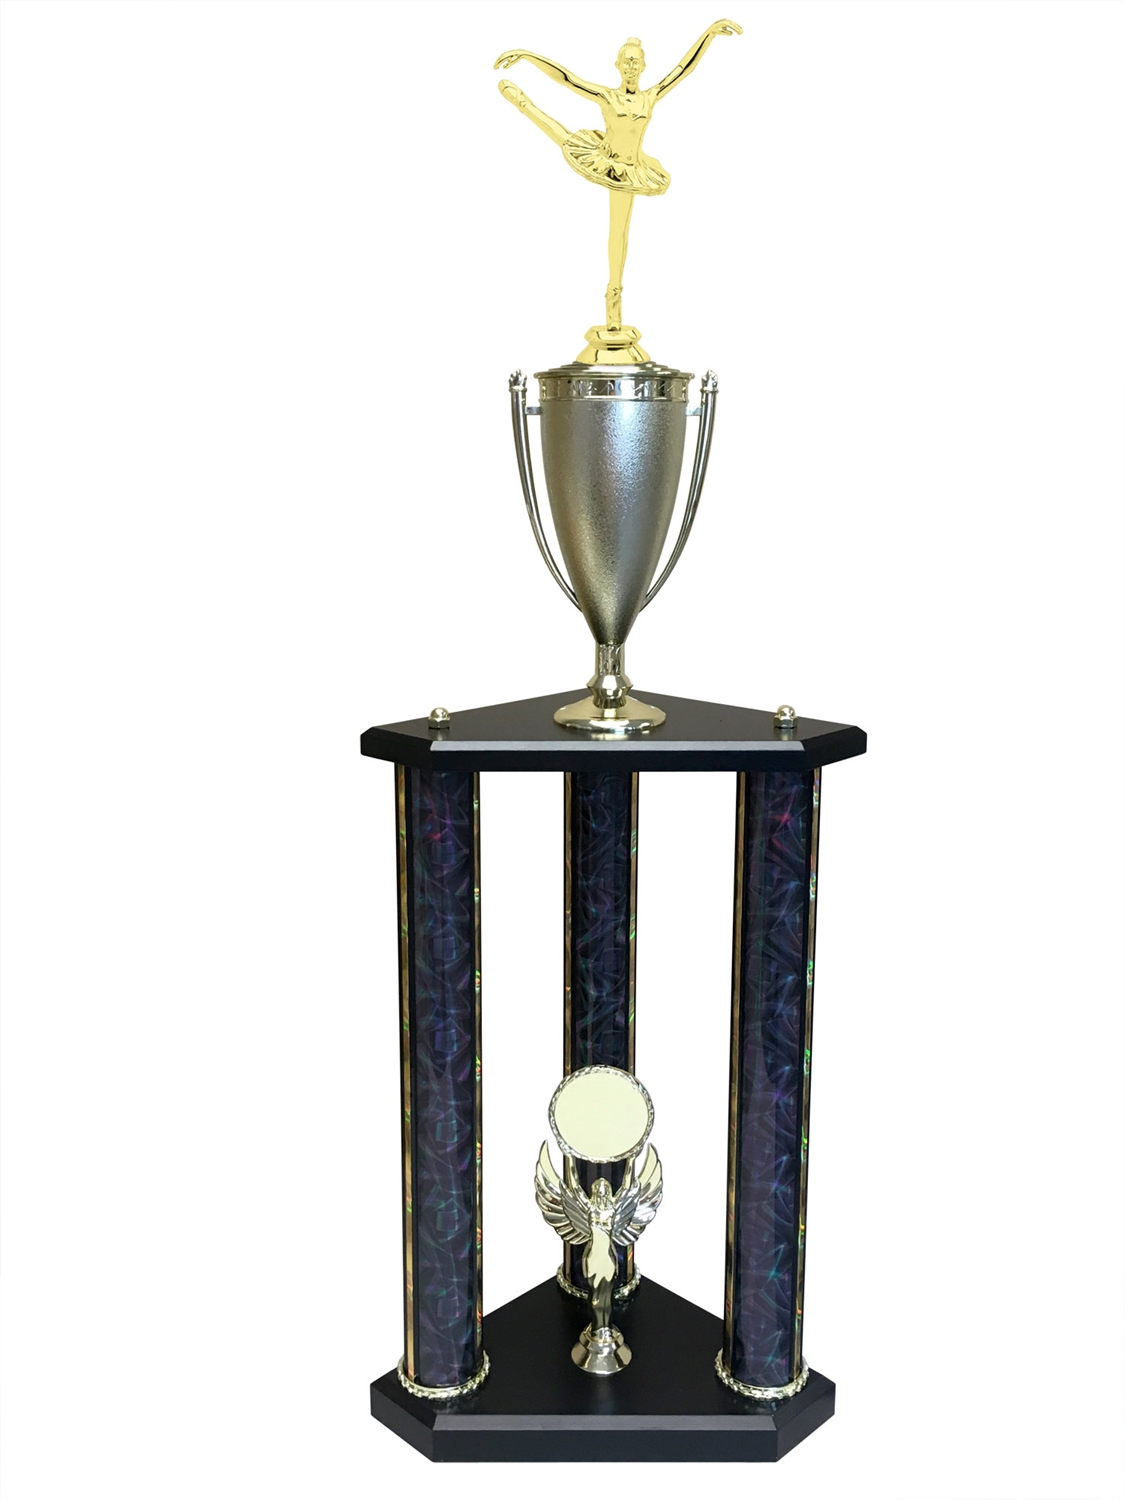 3 Post Ballet Trophy in 3 Sizes - in 11 colors & 3 sizes